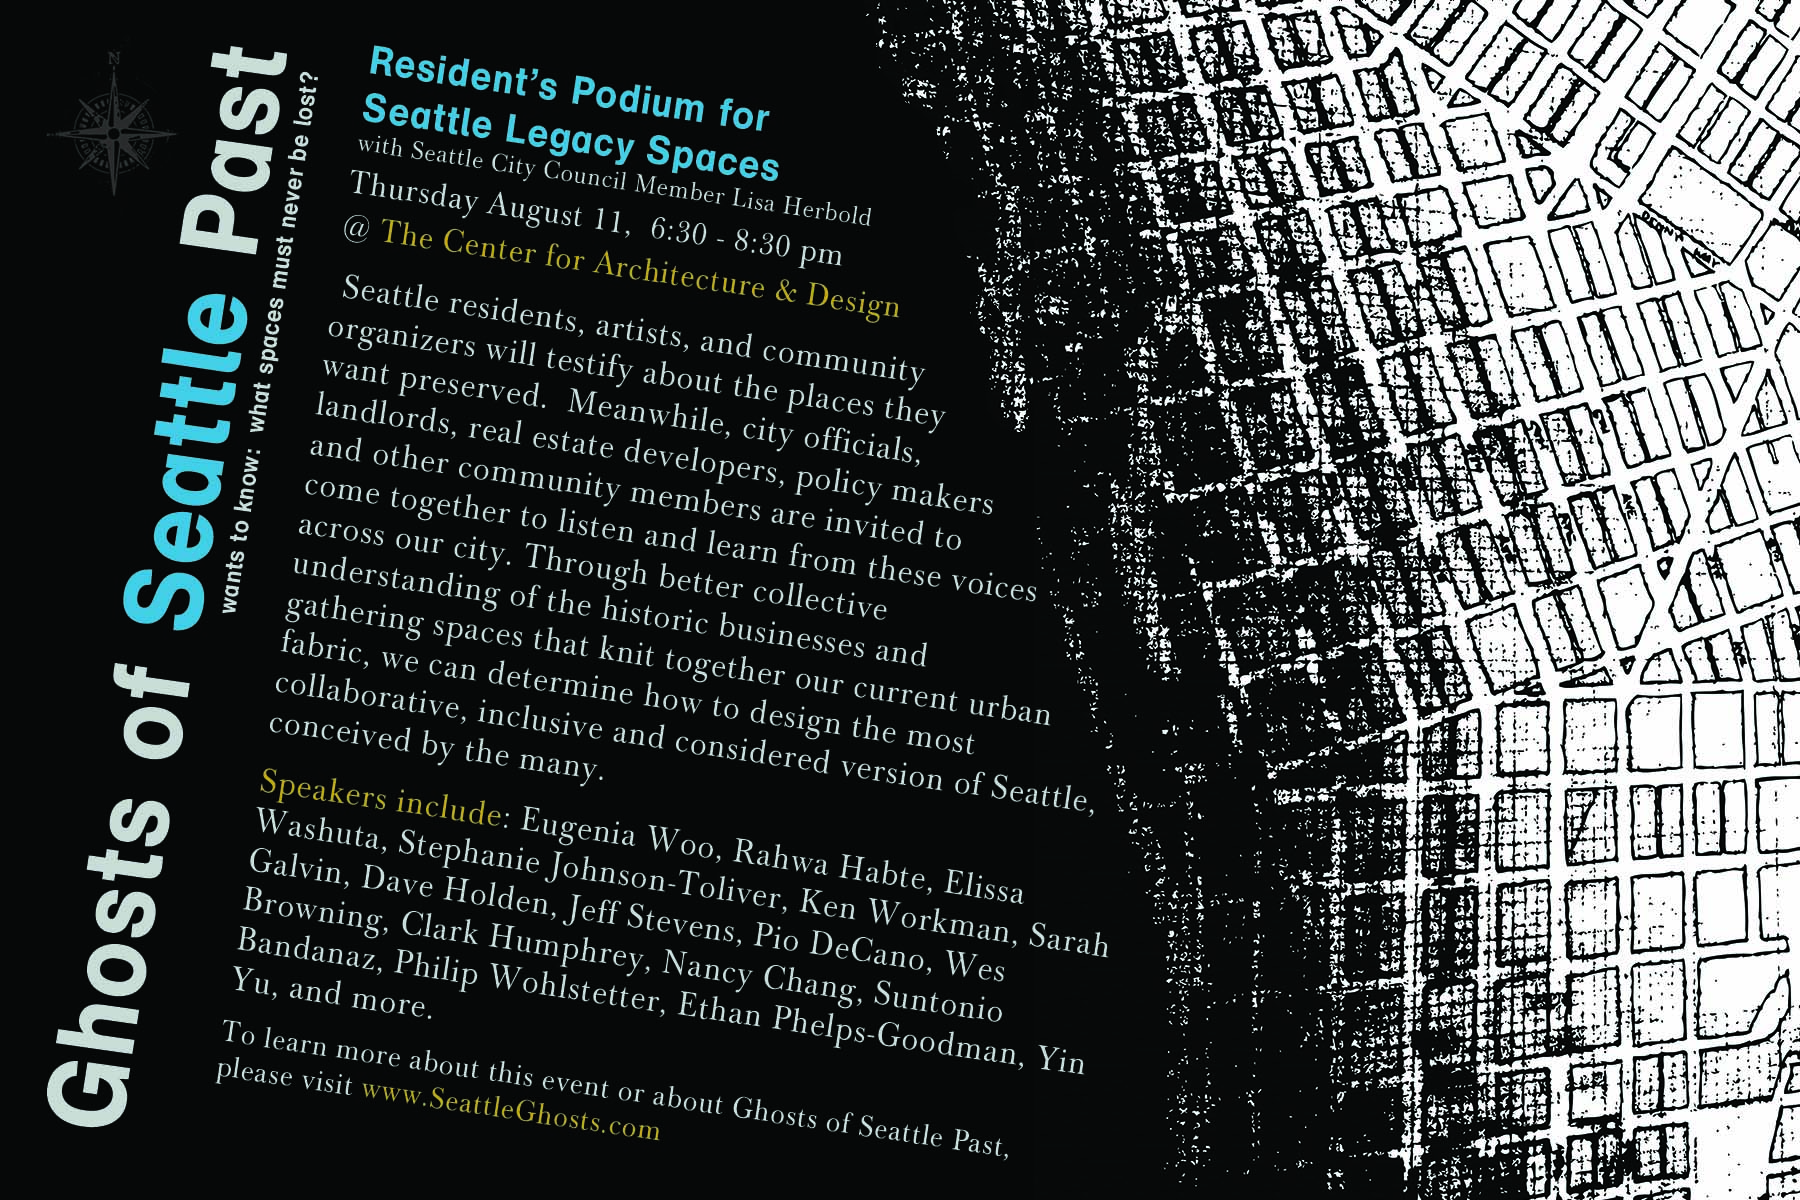 Flyer for Residents' Podium event